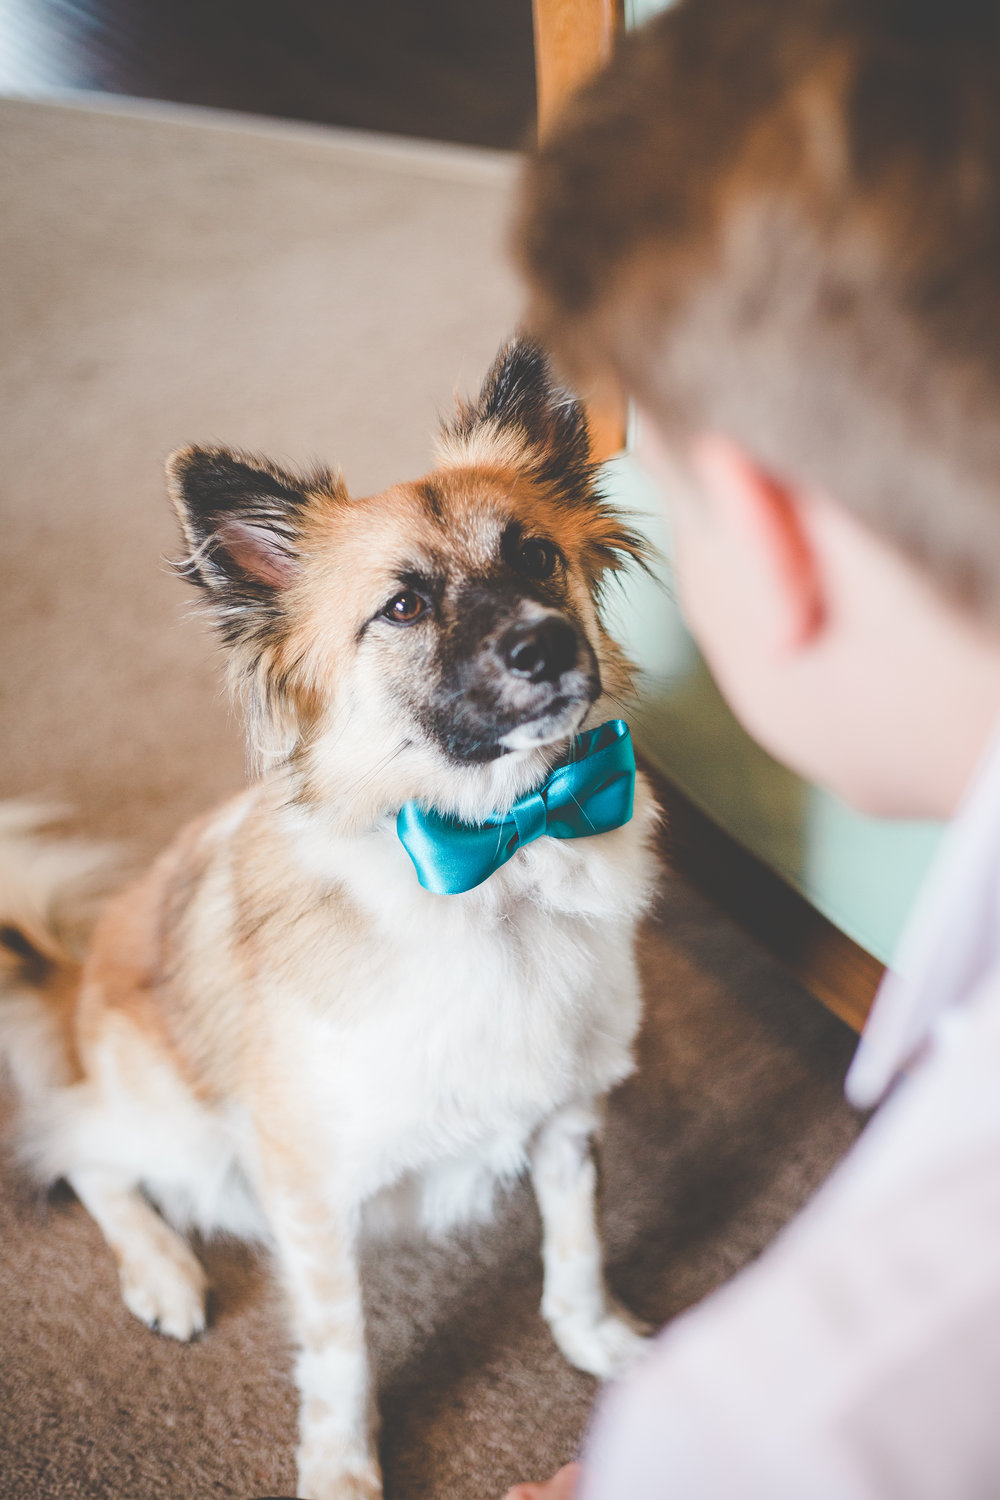 The family dog with a green bow tie on- Creative wedding photography in lancashire